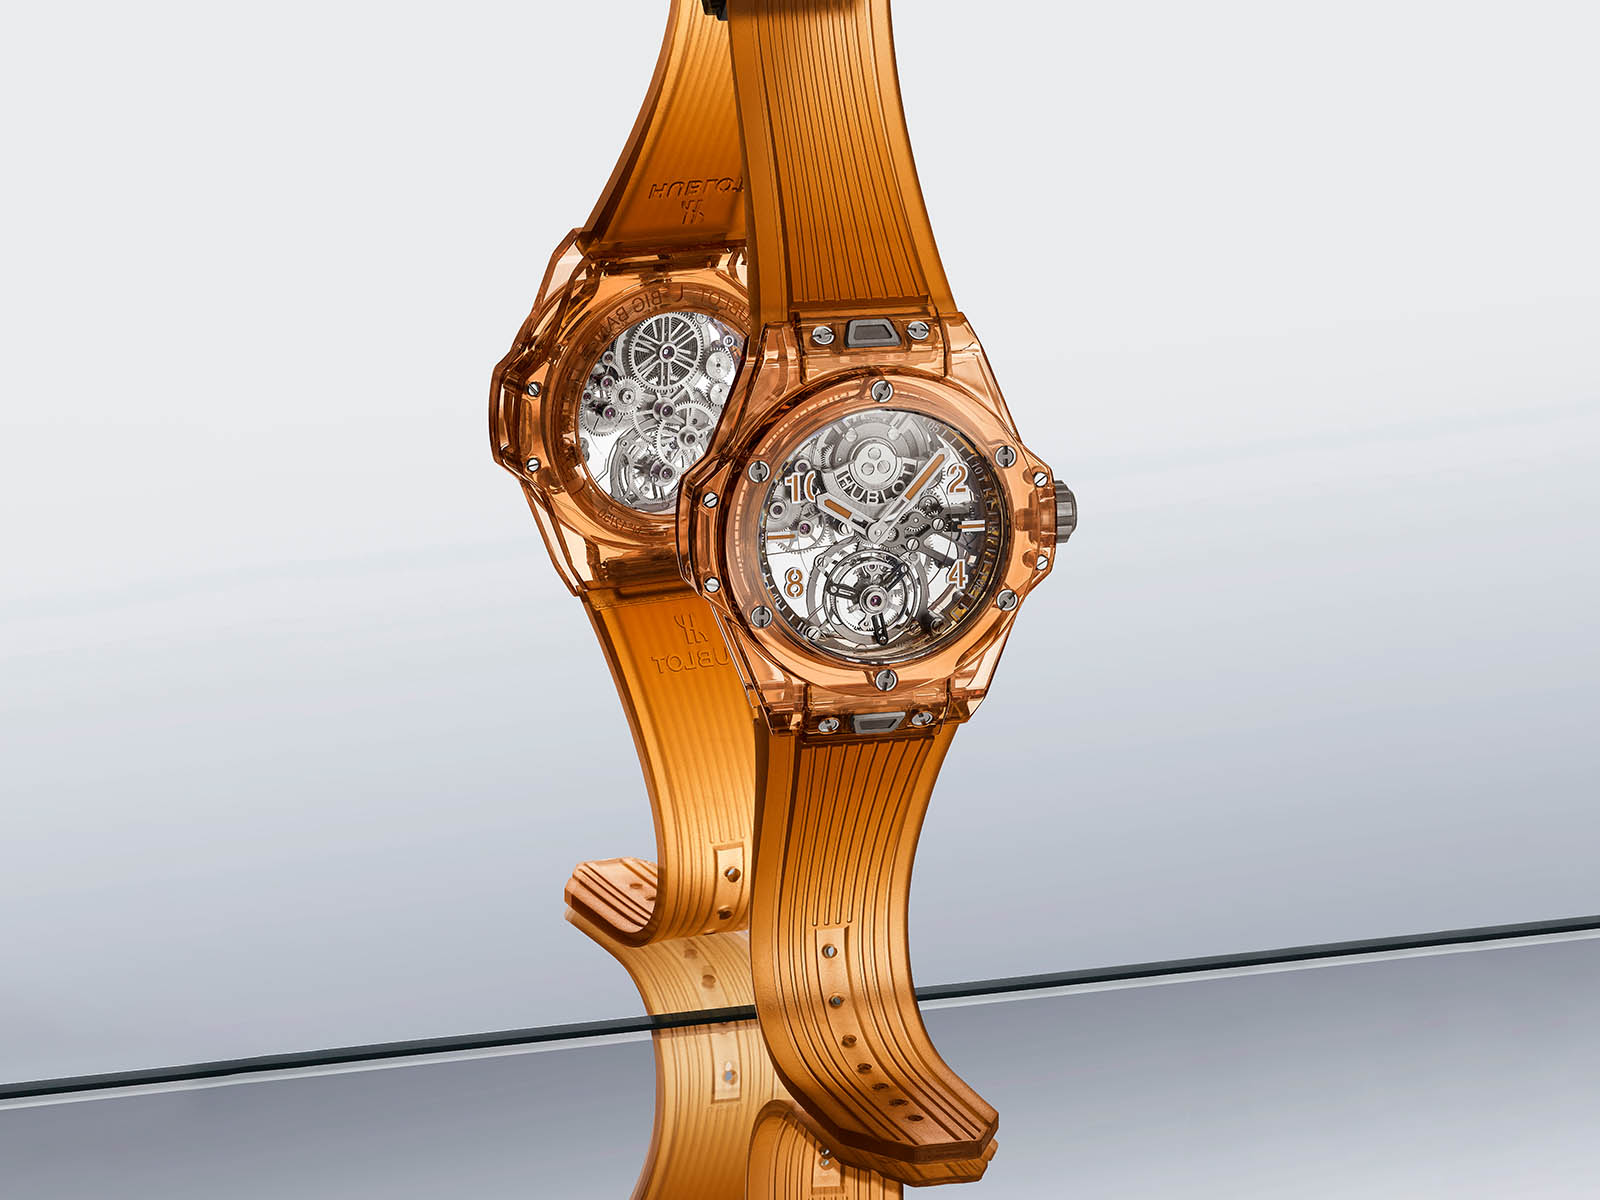 hublot-big-bang-tourbillon-orange-sapphire-lvmh-2021-novelties-2.jpg